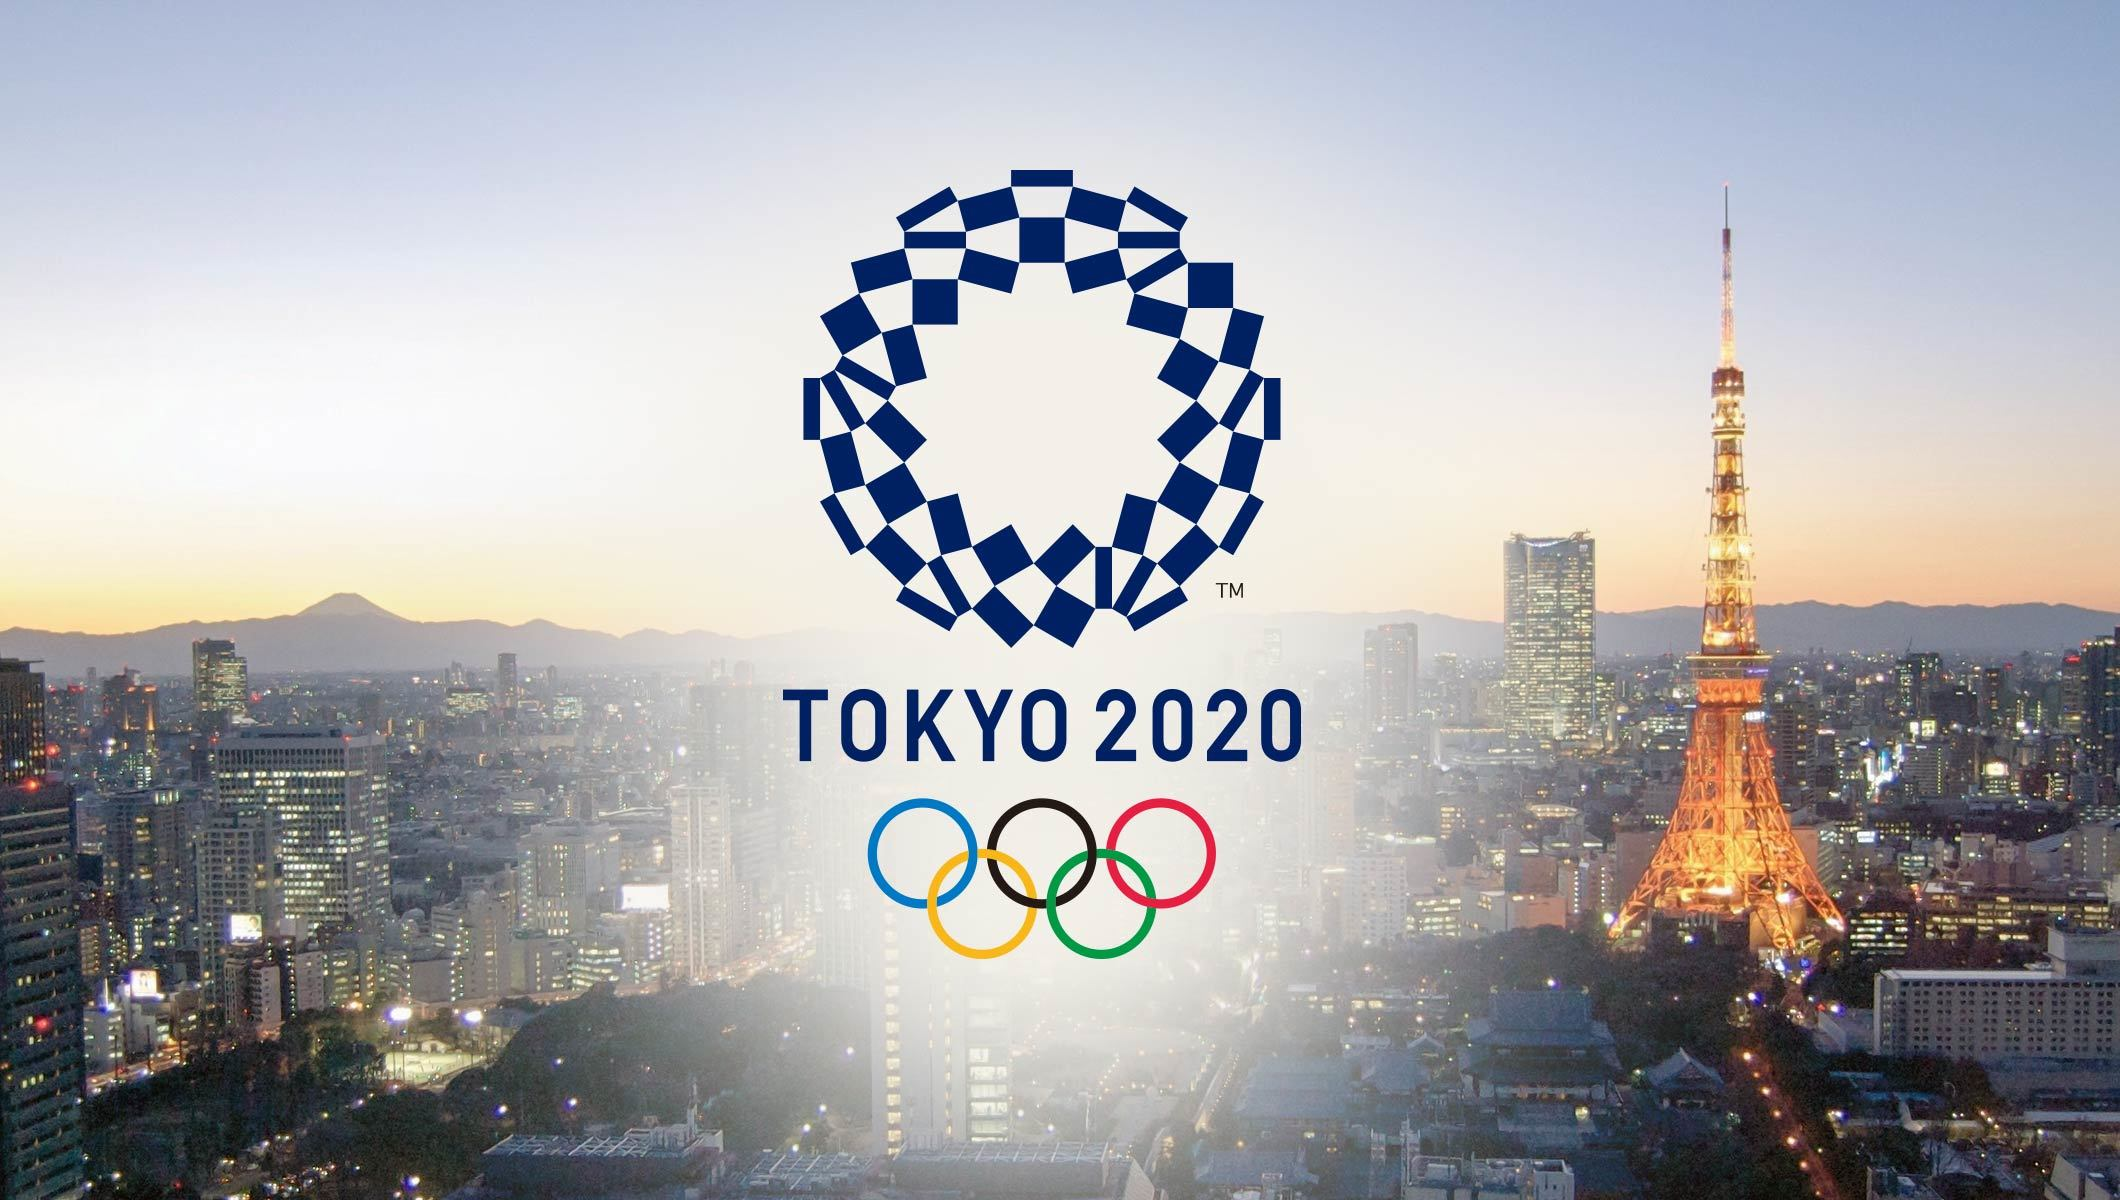 2020 Olympics Schedule.It S Here The Aquatics Schedule For The 2020 Olympic Games